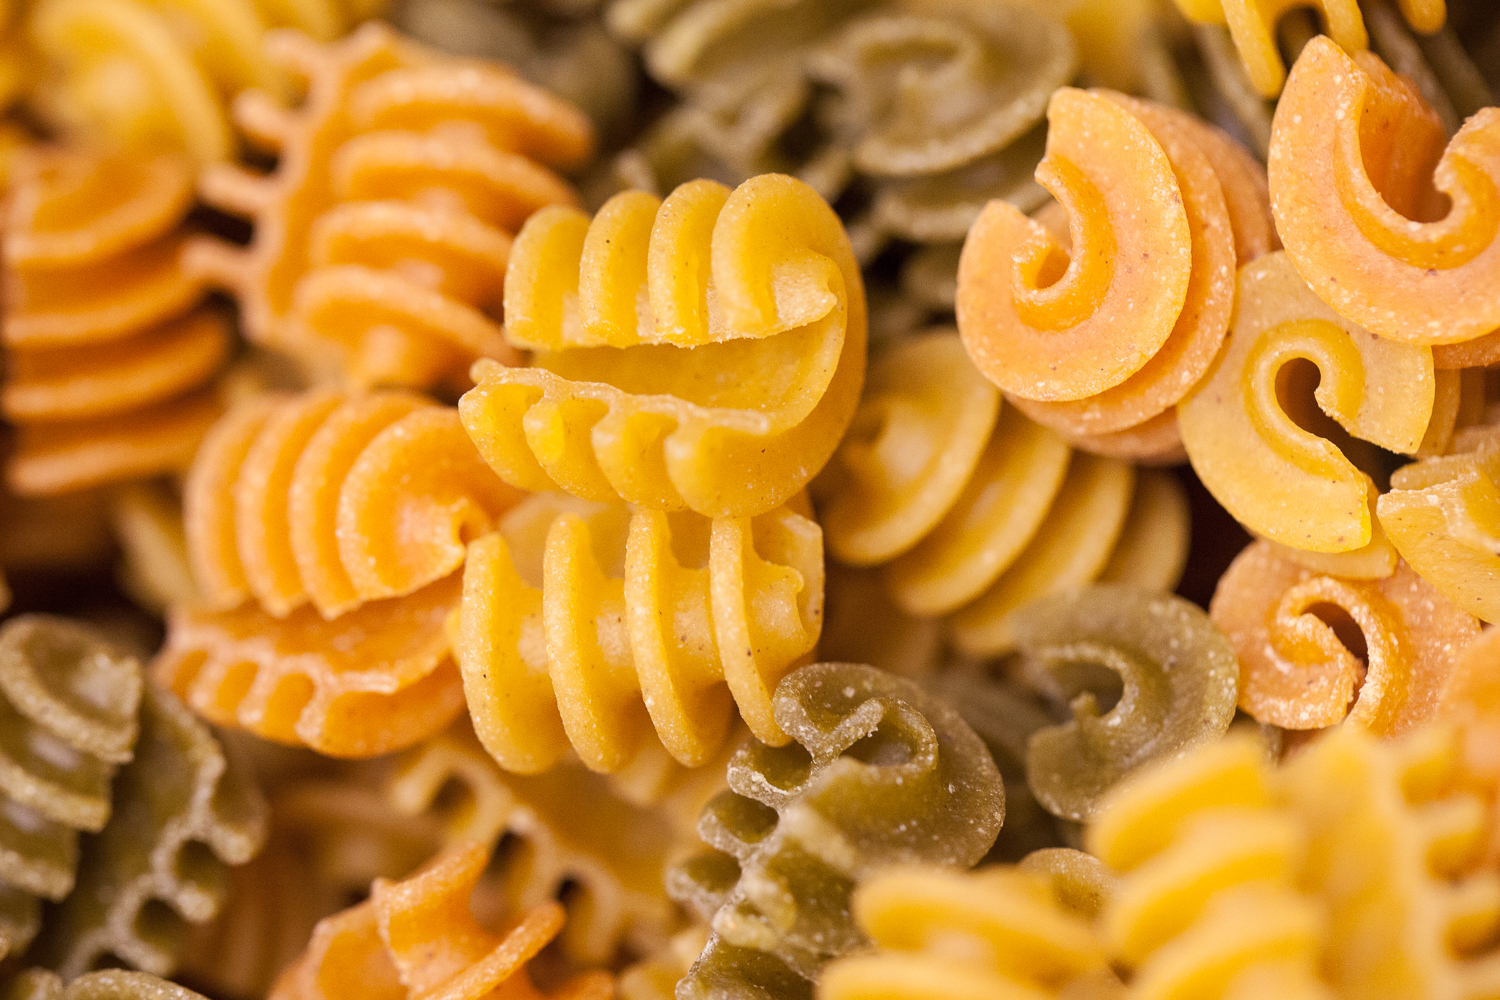 mana-foods-recipe-four-cheese-pasta.jpg